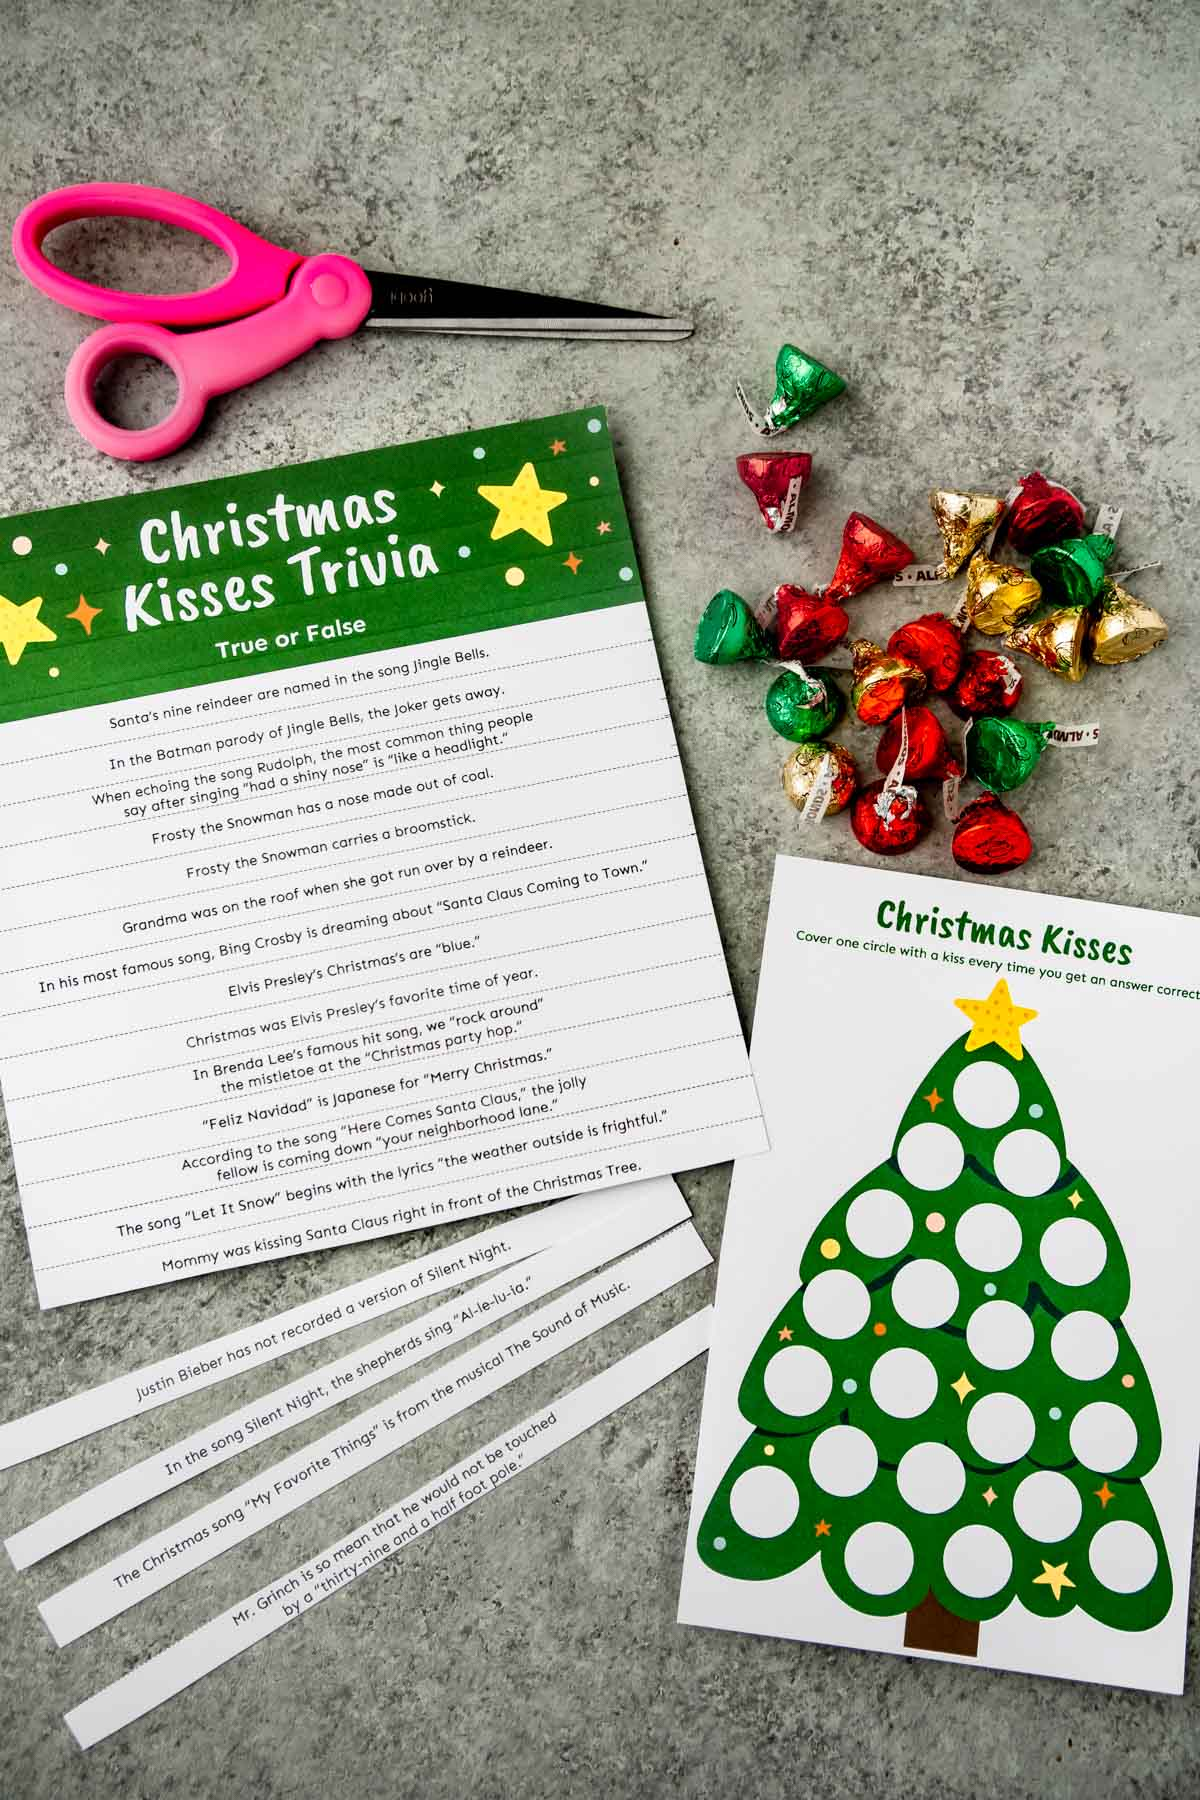 Supplies needed to play a Christmas trivia game